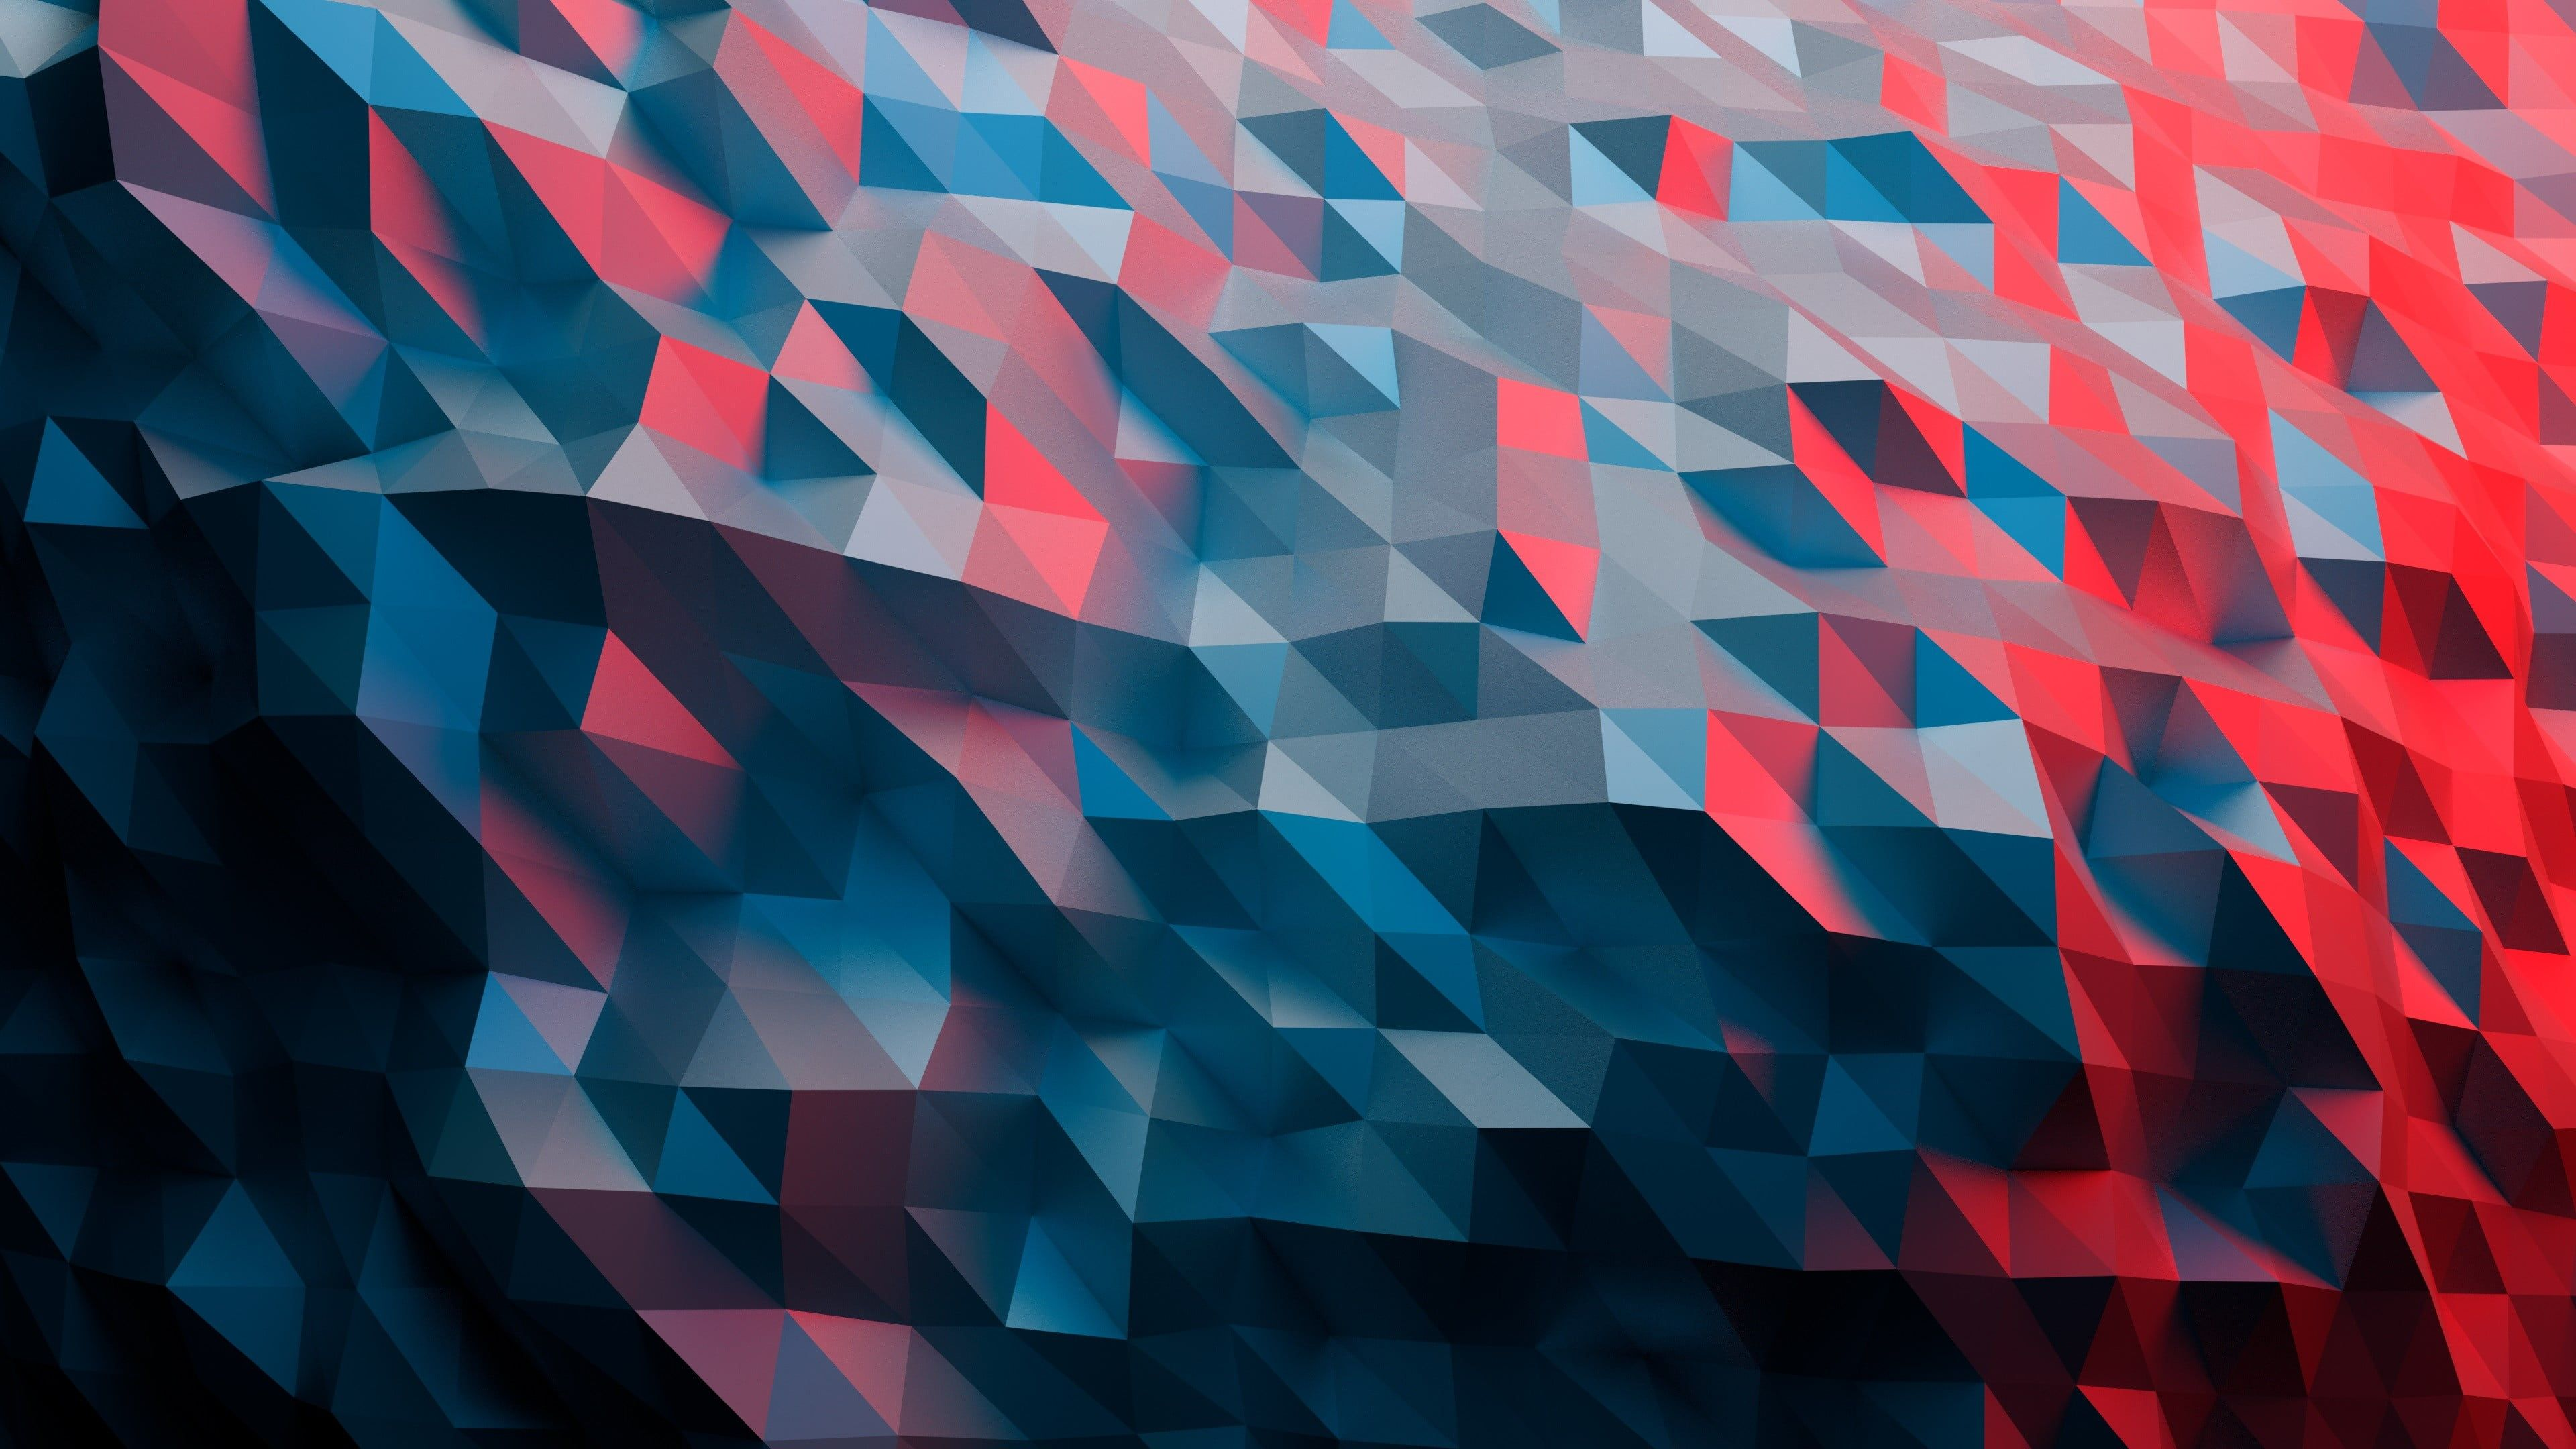 Red Black And Blue Abstract Painting Low Poly Abstract 4k Wallpaper Hdwallpaper Desktop Abstract Wallpaper Abstract Blue Abstract Painting